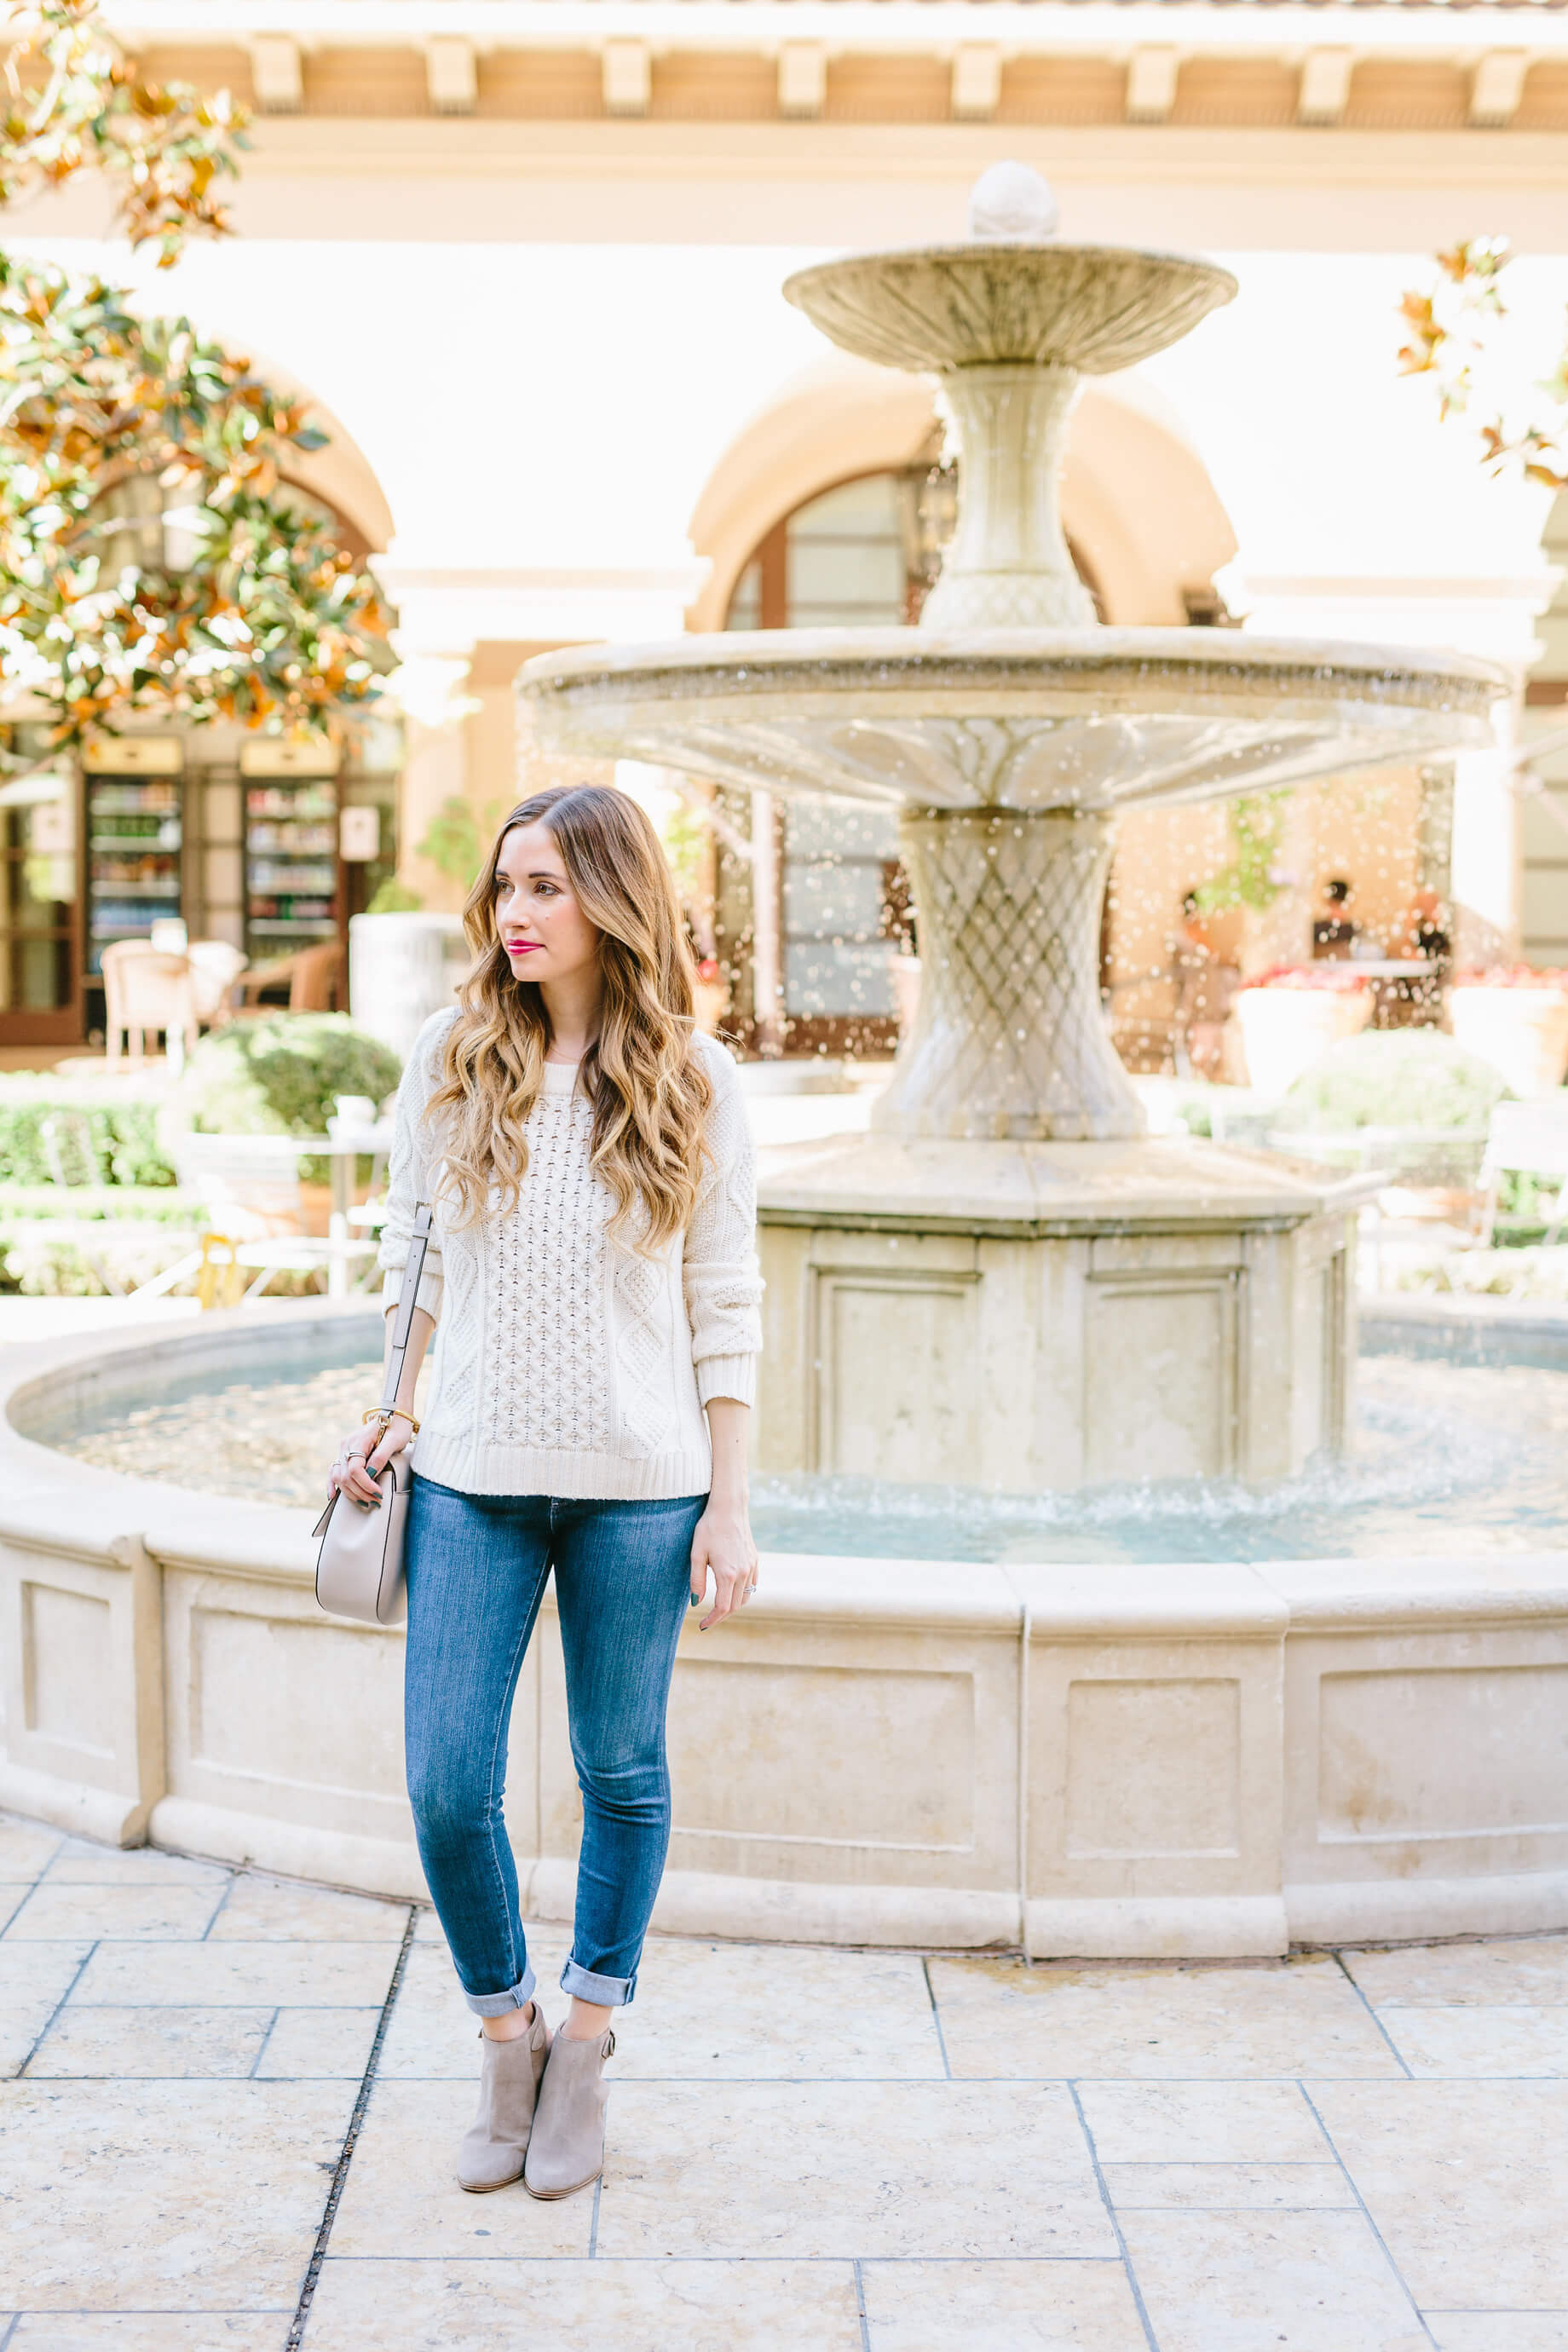 casual sweater outfit post